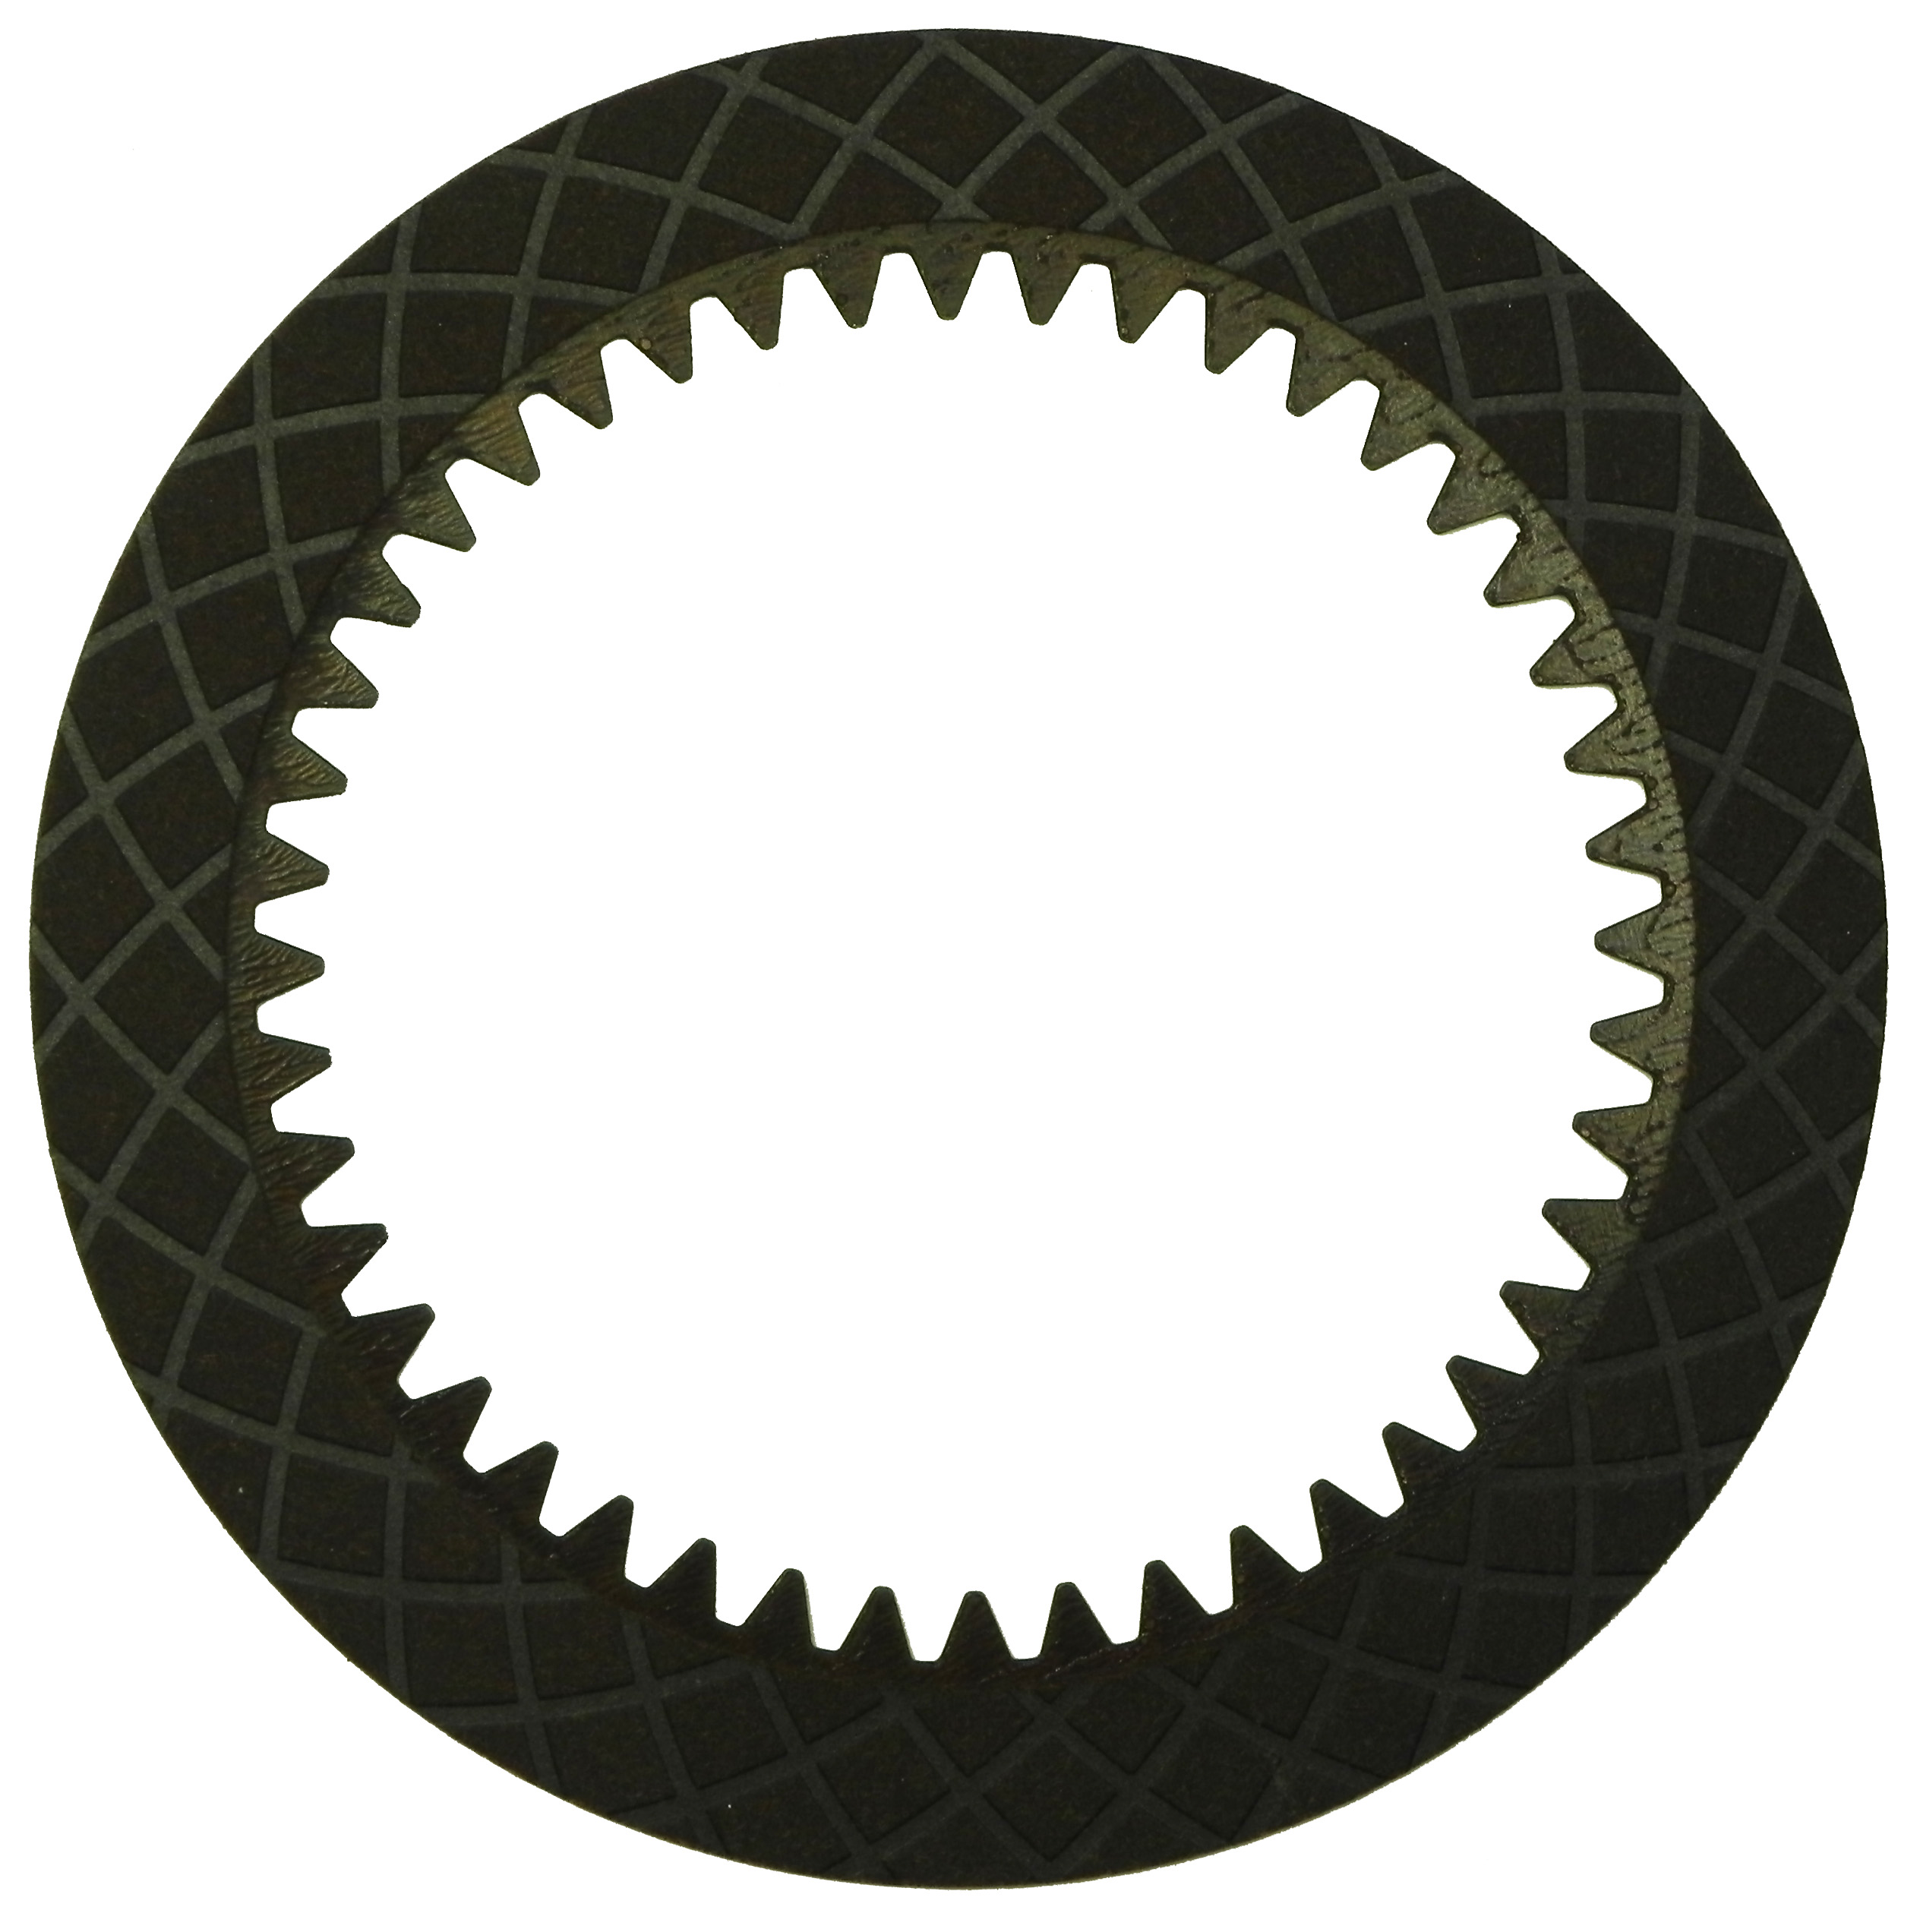 R571830 | 2002-2006 Friction Clutch Plate GPX 3rd, 4th GPX